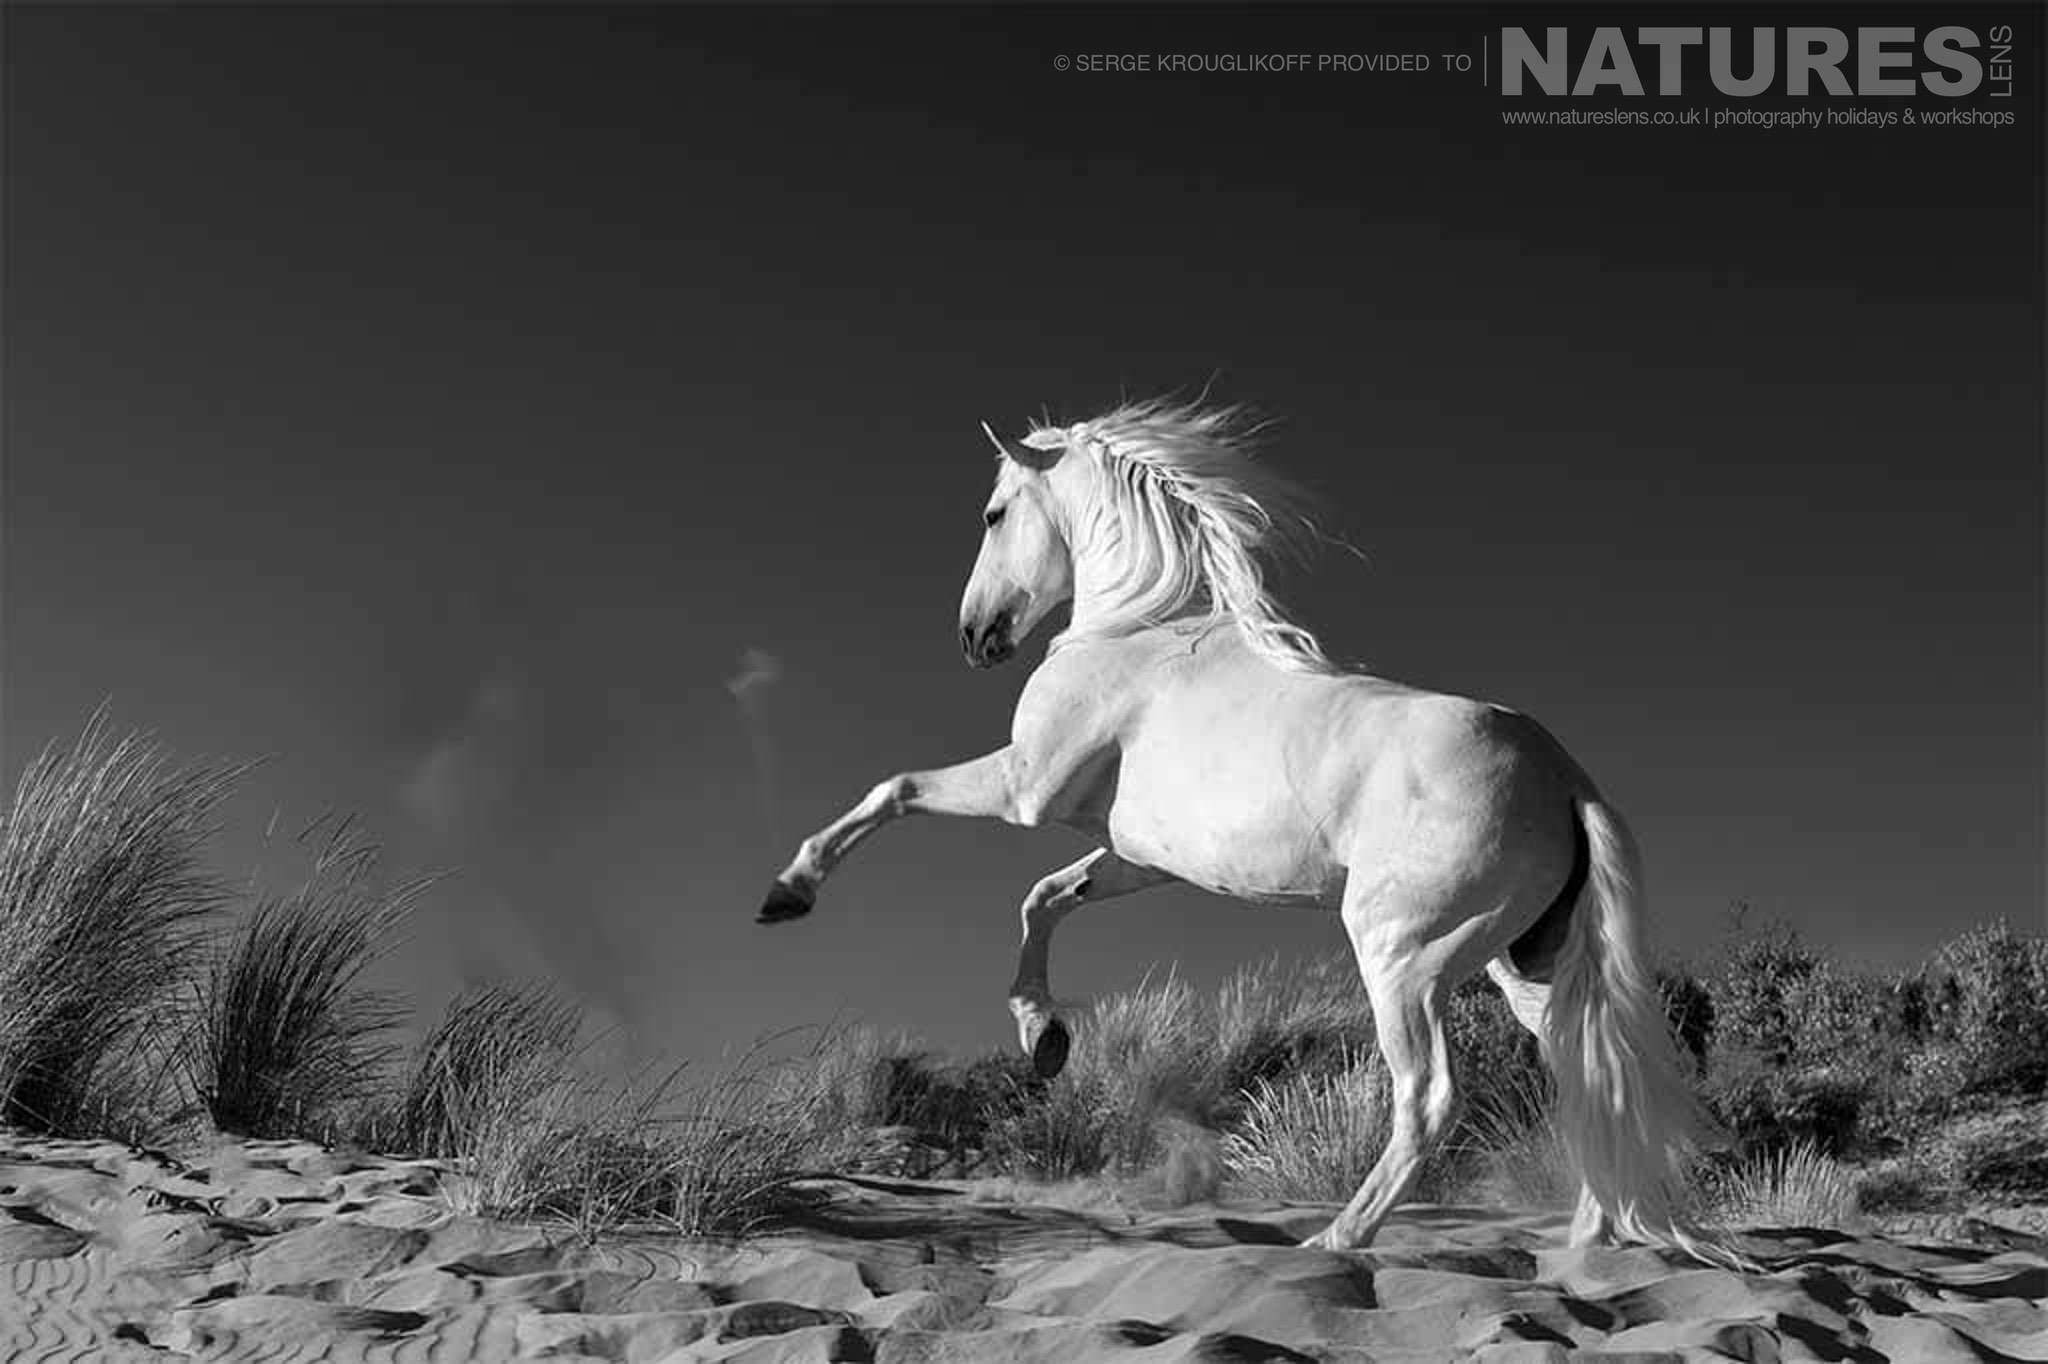 Single white horse running through the marsh typical of the type of image that may be captured during the NaturesLens Wild White Horses of the Camargue Photography Holiday